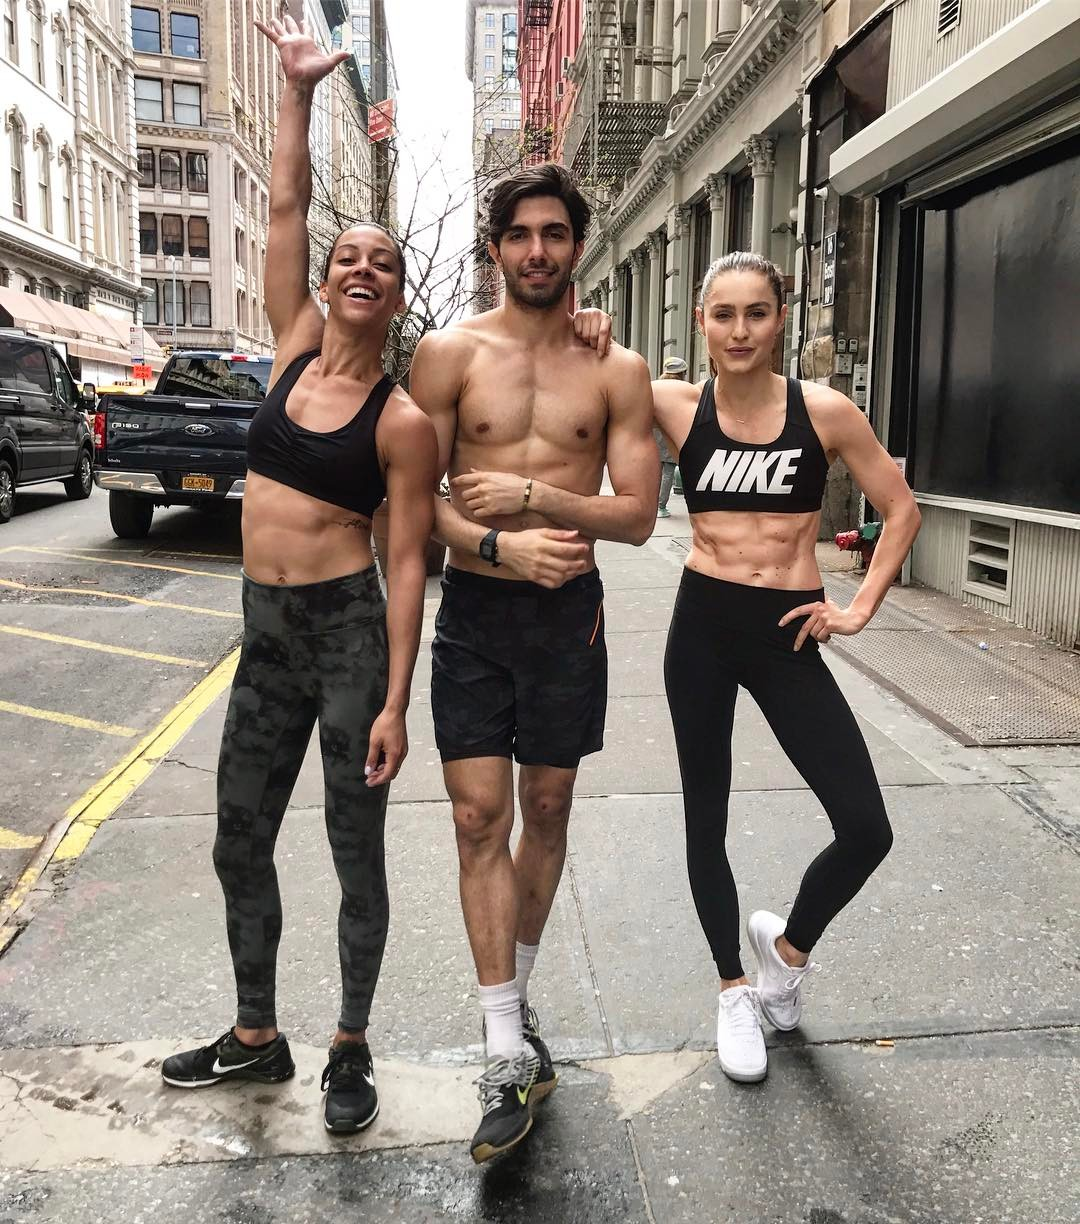 Get Washboard Abs With These Moves From Akin Akman, Supermodel Trainer (Video)